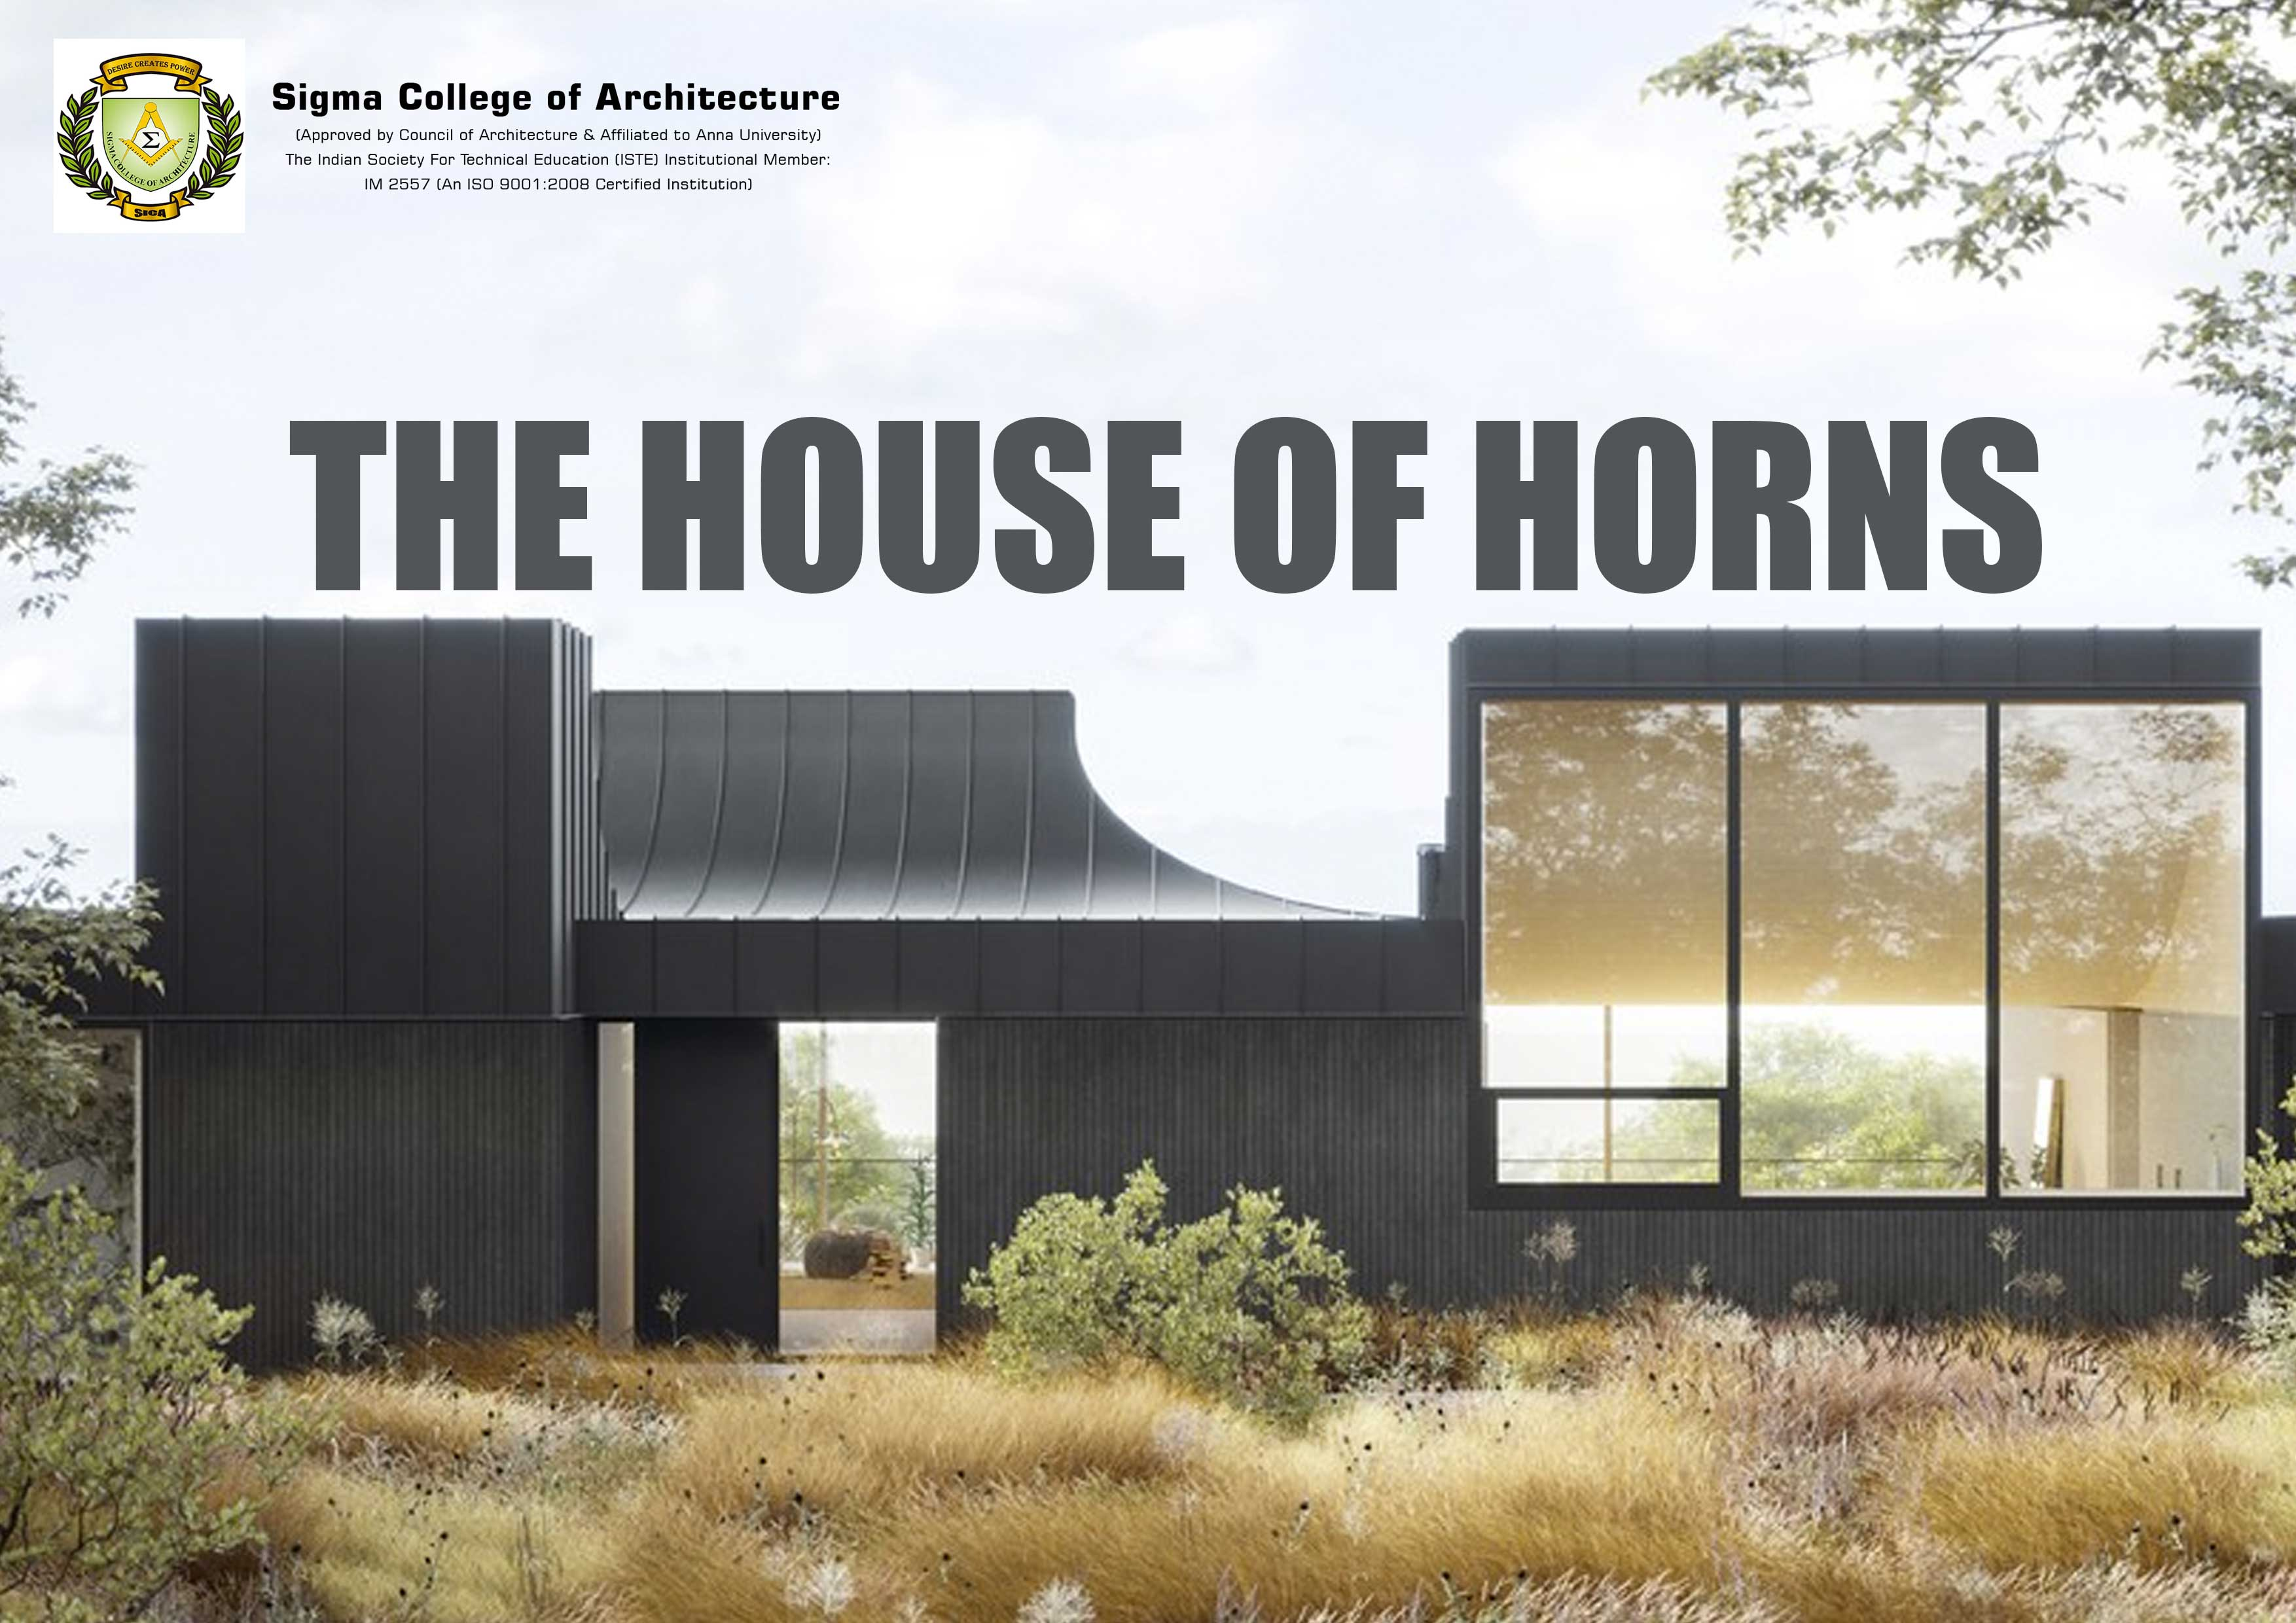 The House of Horns